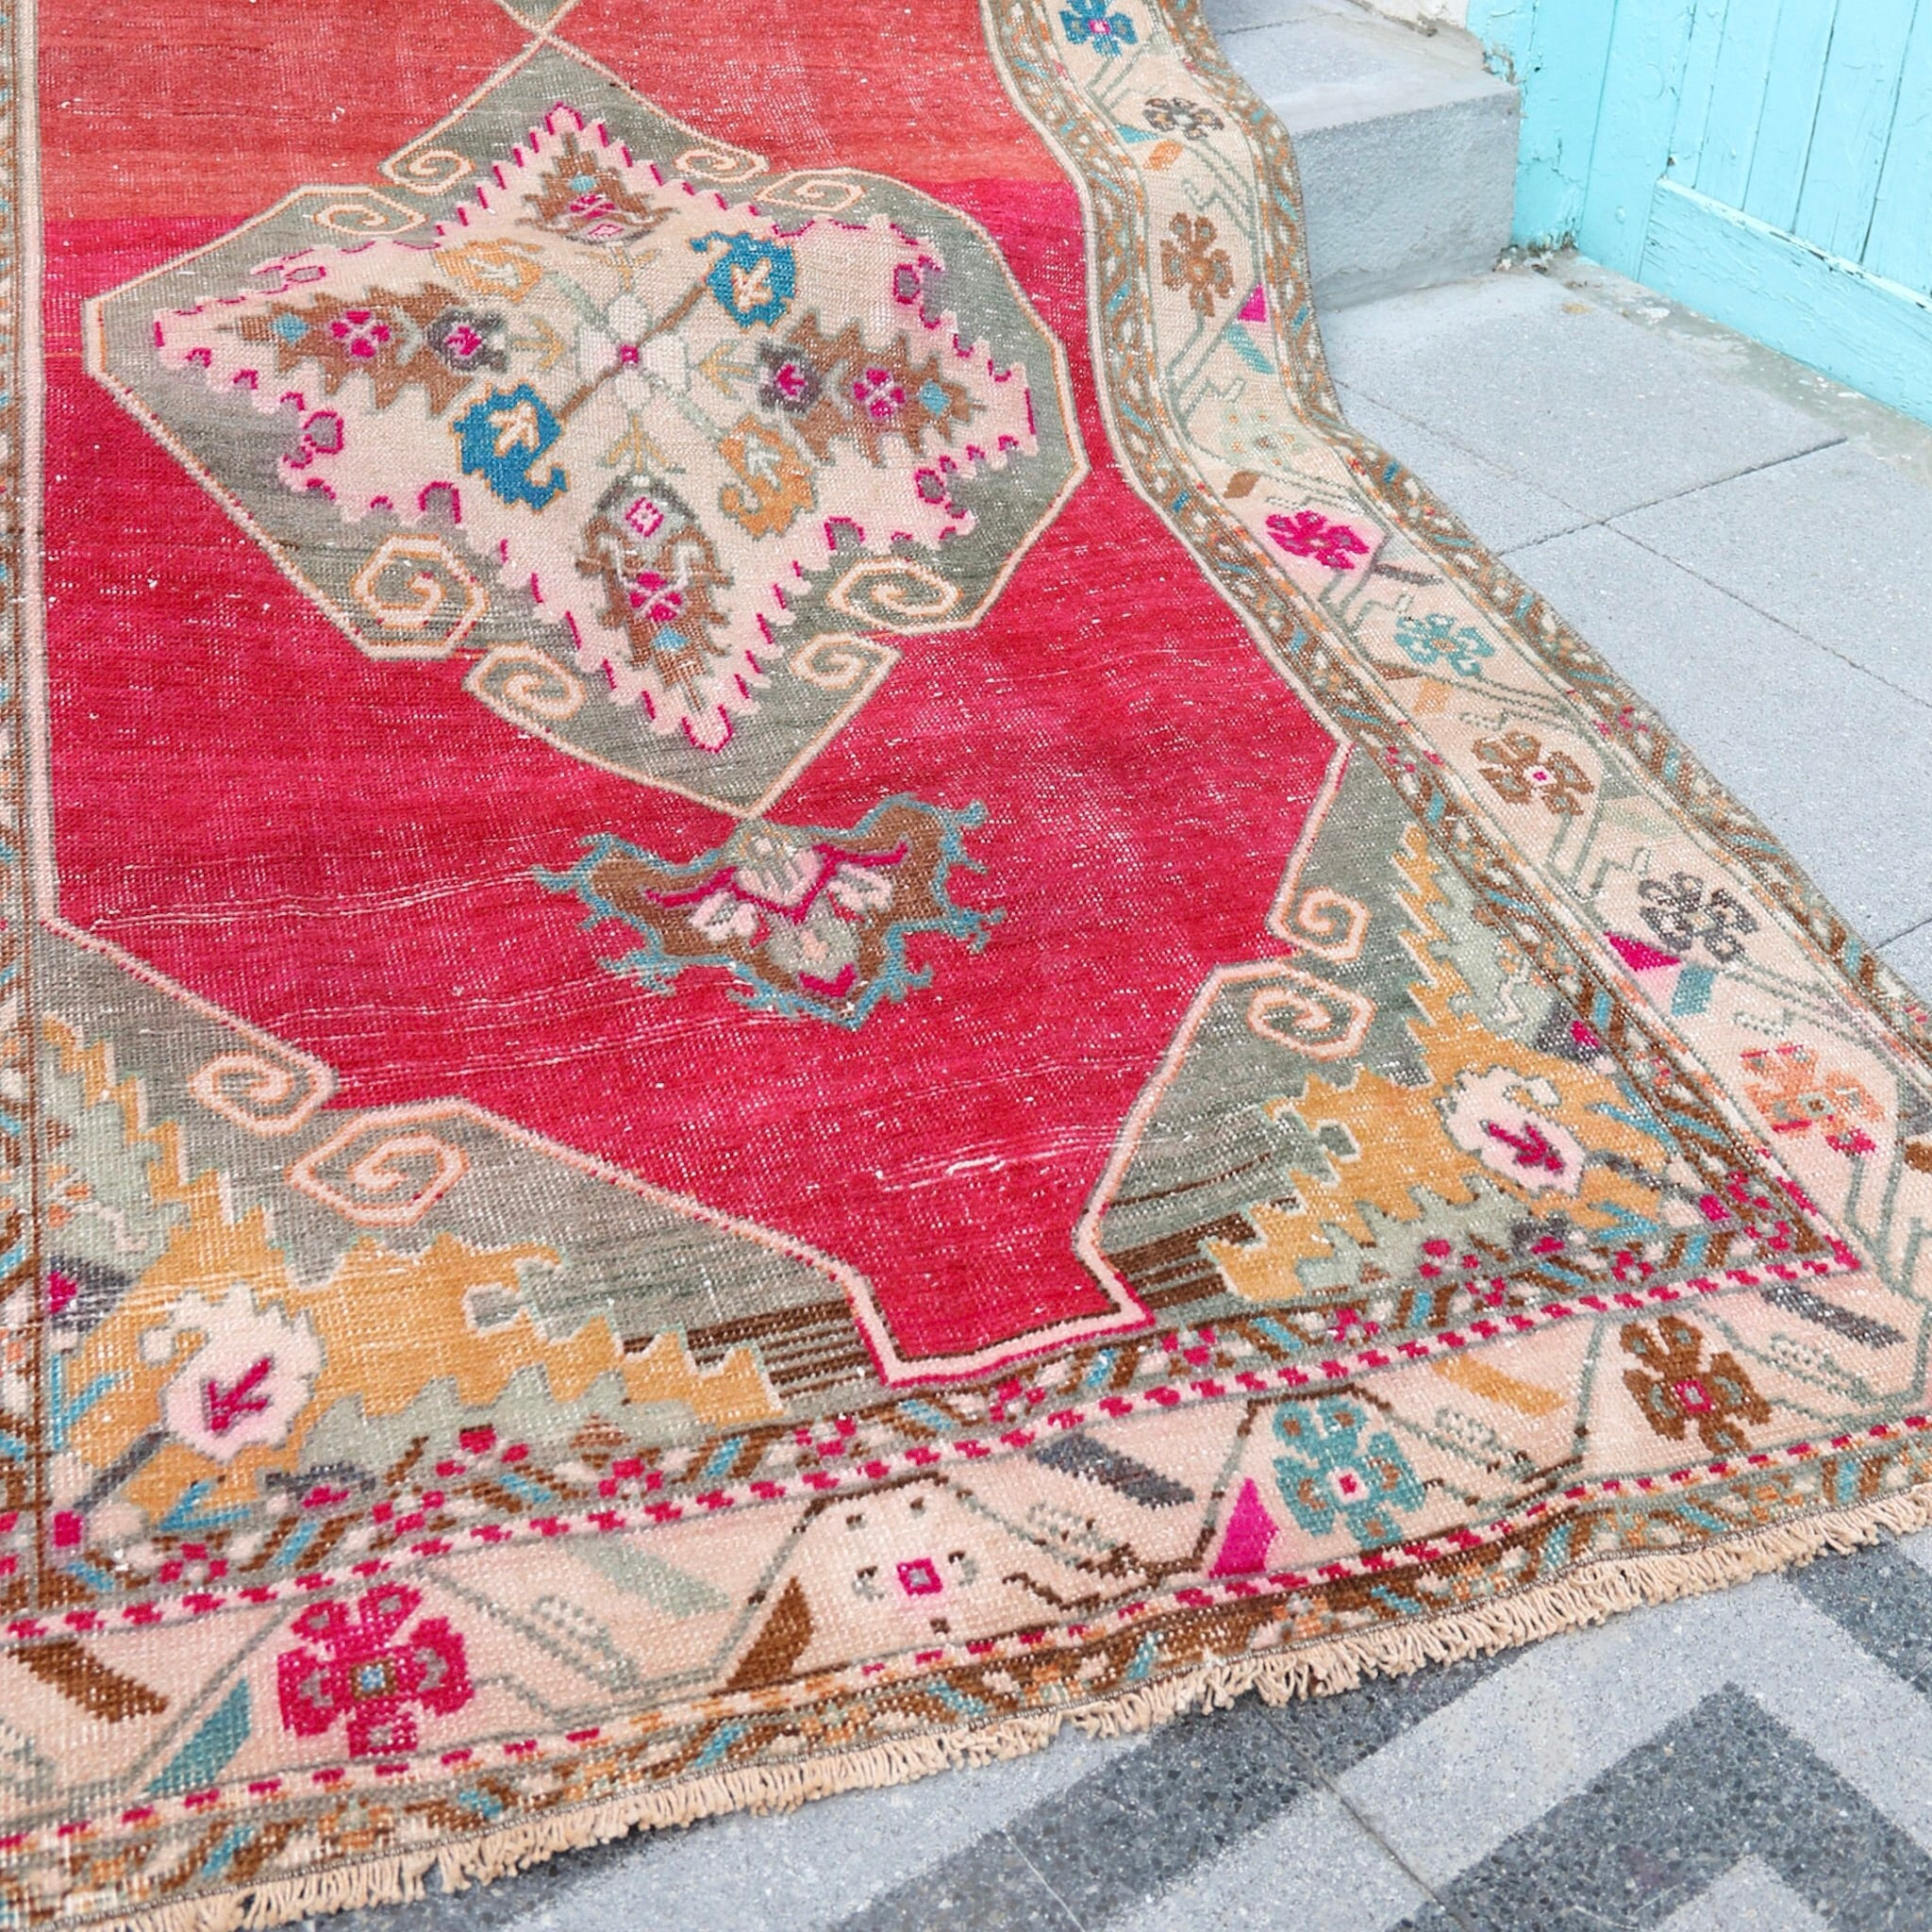 ON HOLD 1172 Gül 3'7x10'10 Handwoven Vintage Rug